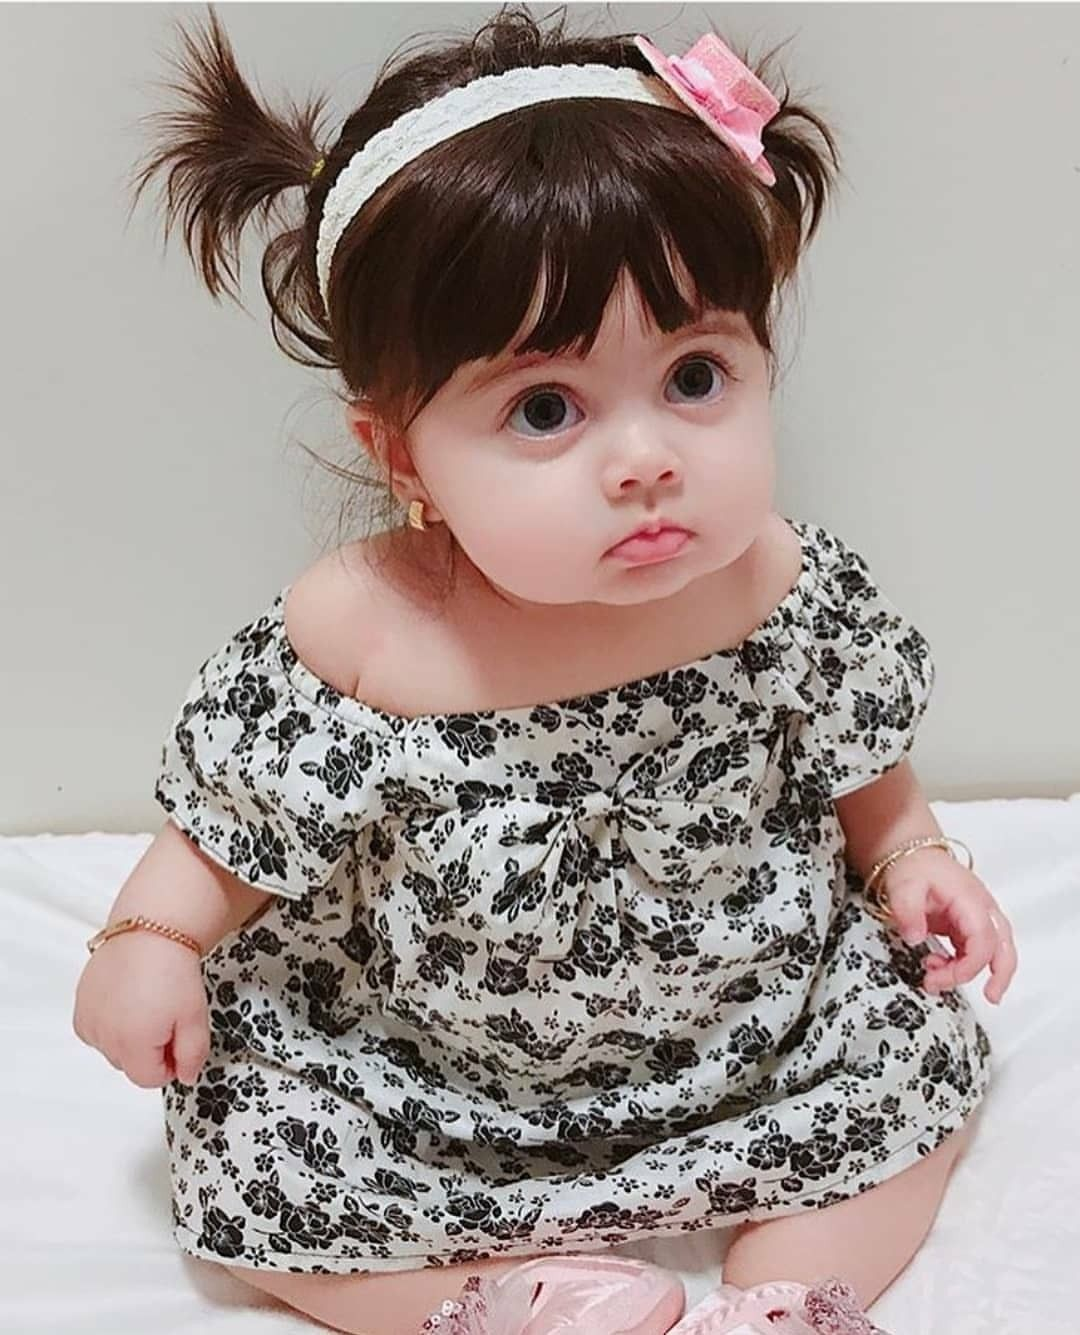 Coolness Look Cute Baby Videos Cute Kids Photography Baby Girl Pictures